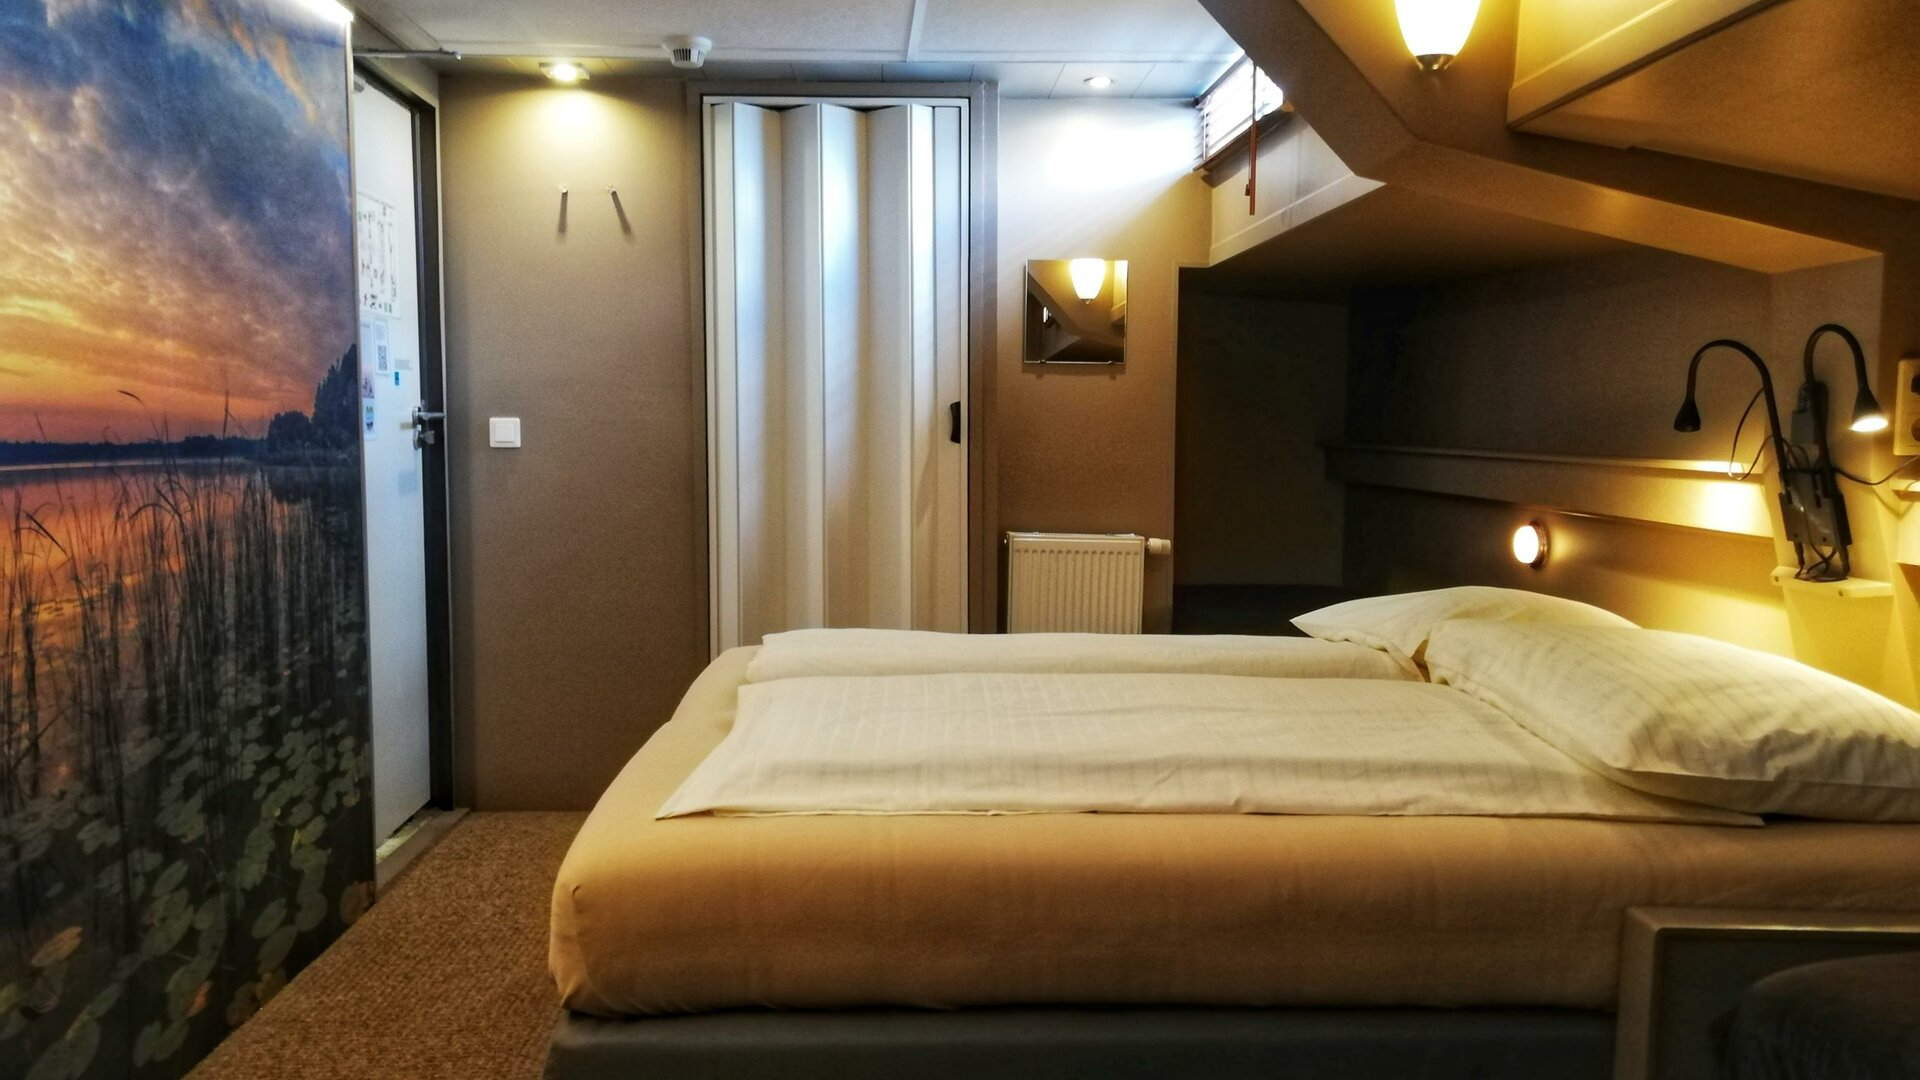 Botel Ophoven - Botel by night